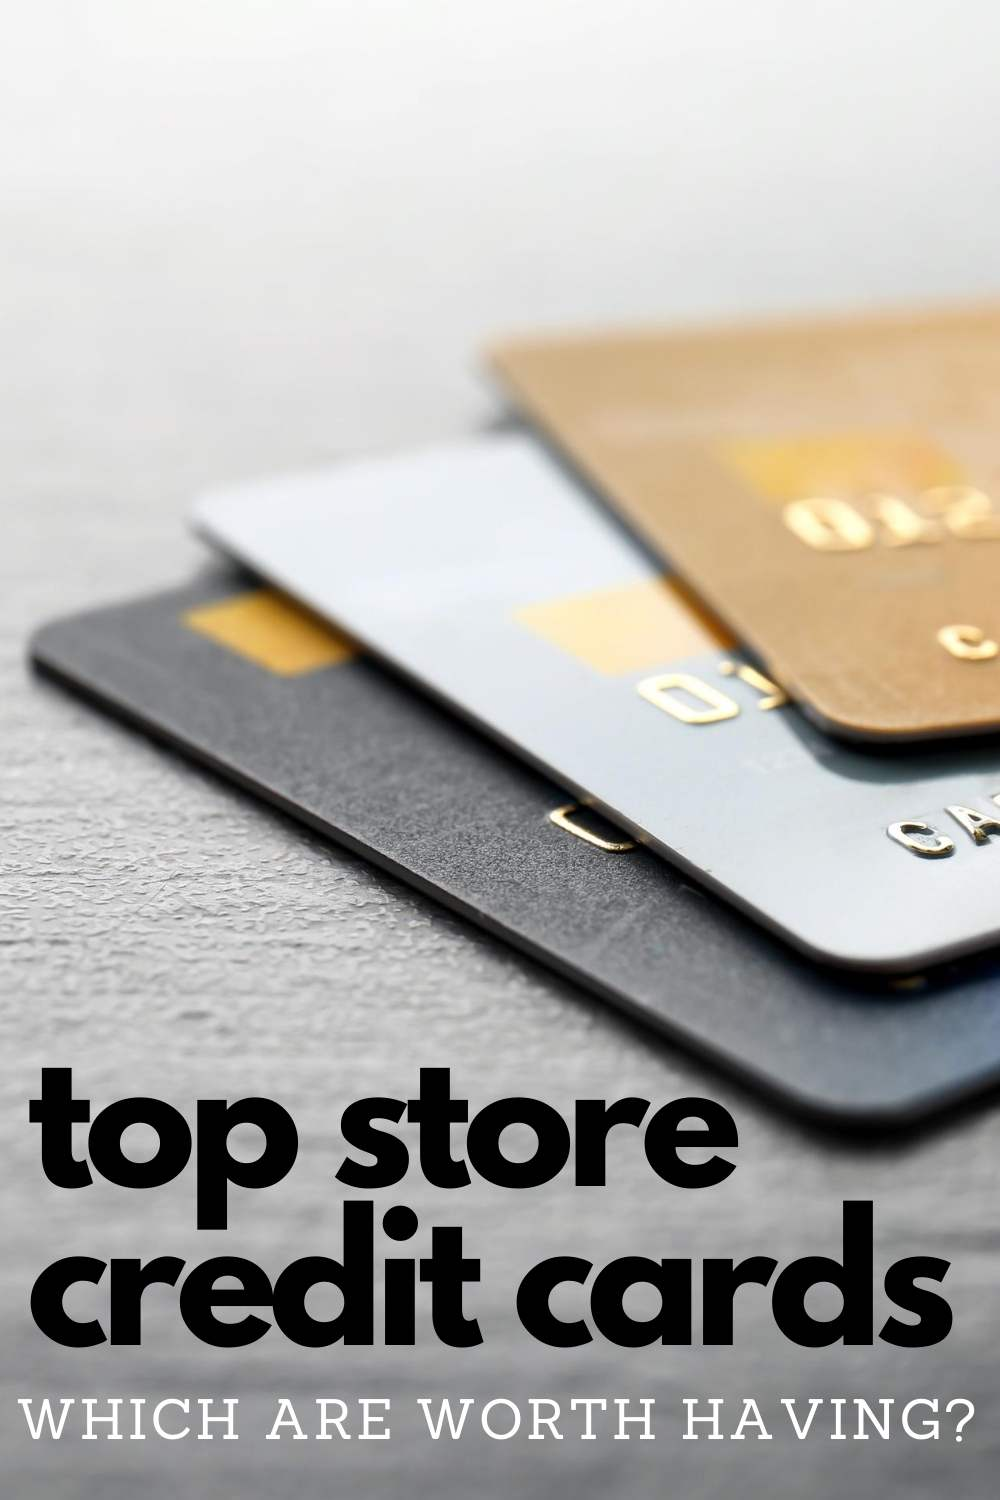 Having a store credit card can truly pay off if you use them wisely and have cards with the most rewards and benefits! See which are the best cards to have: